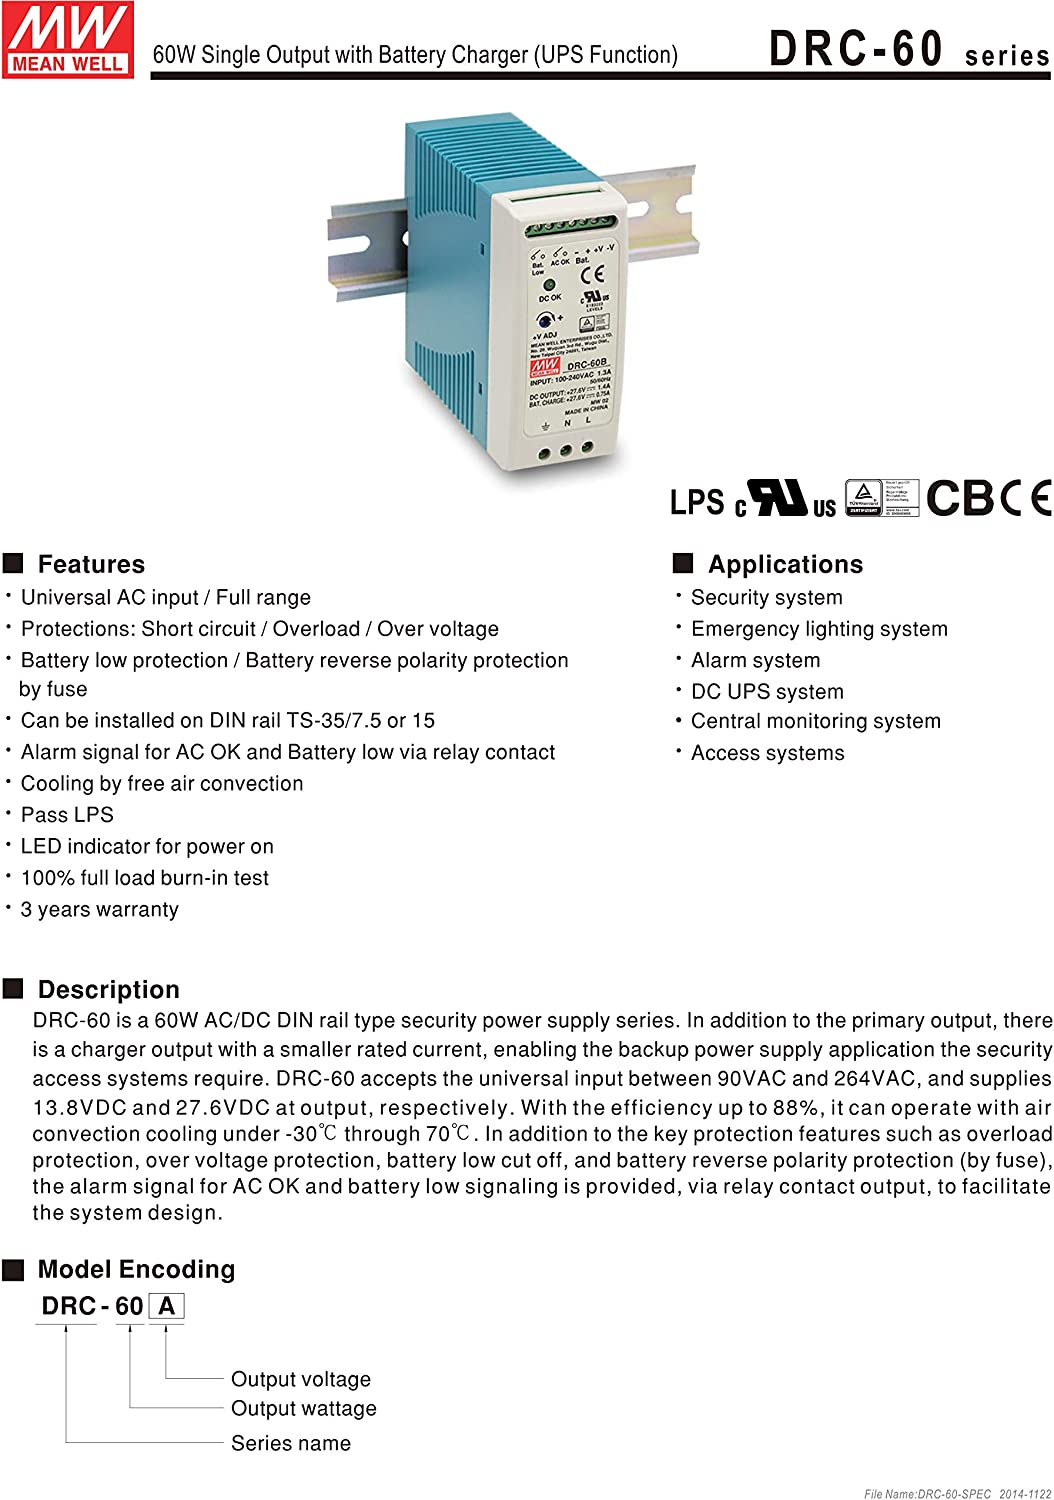 UPS Function MEAN WELL DRC-60A 13.8V 2.8A 1.5A 59.34W Single Output with Battery Charger Security Series